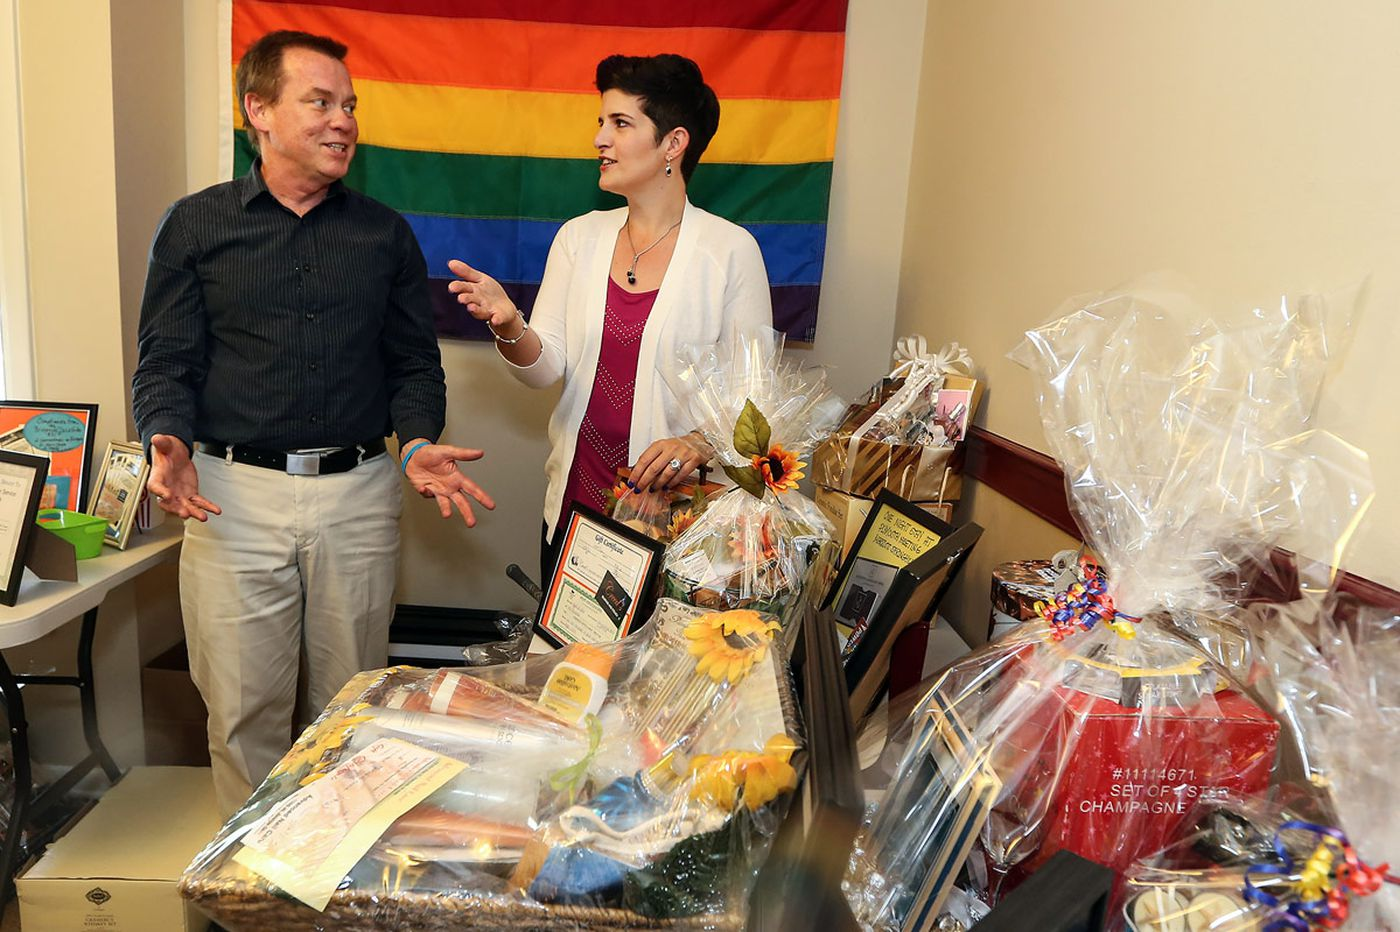 LGBT festival returns to suburban Chesco